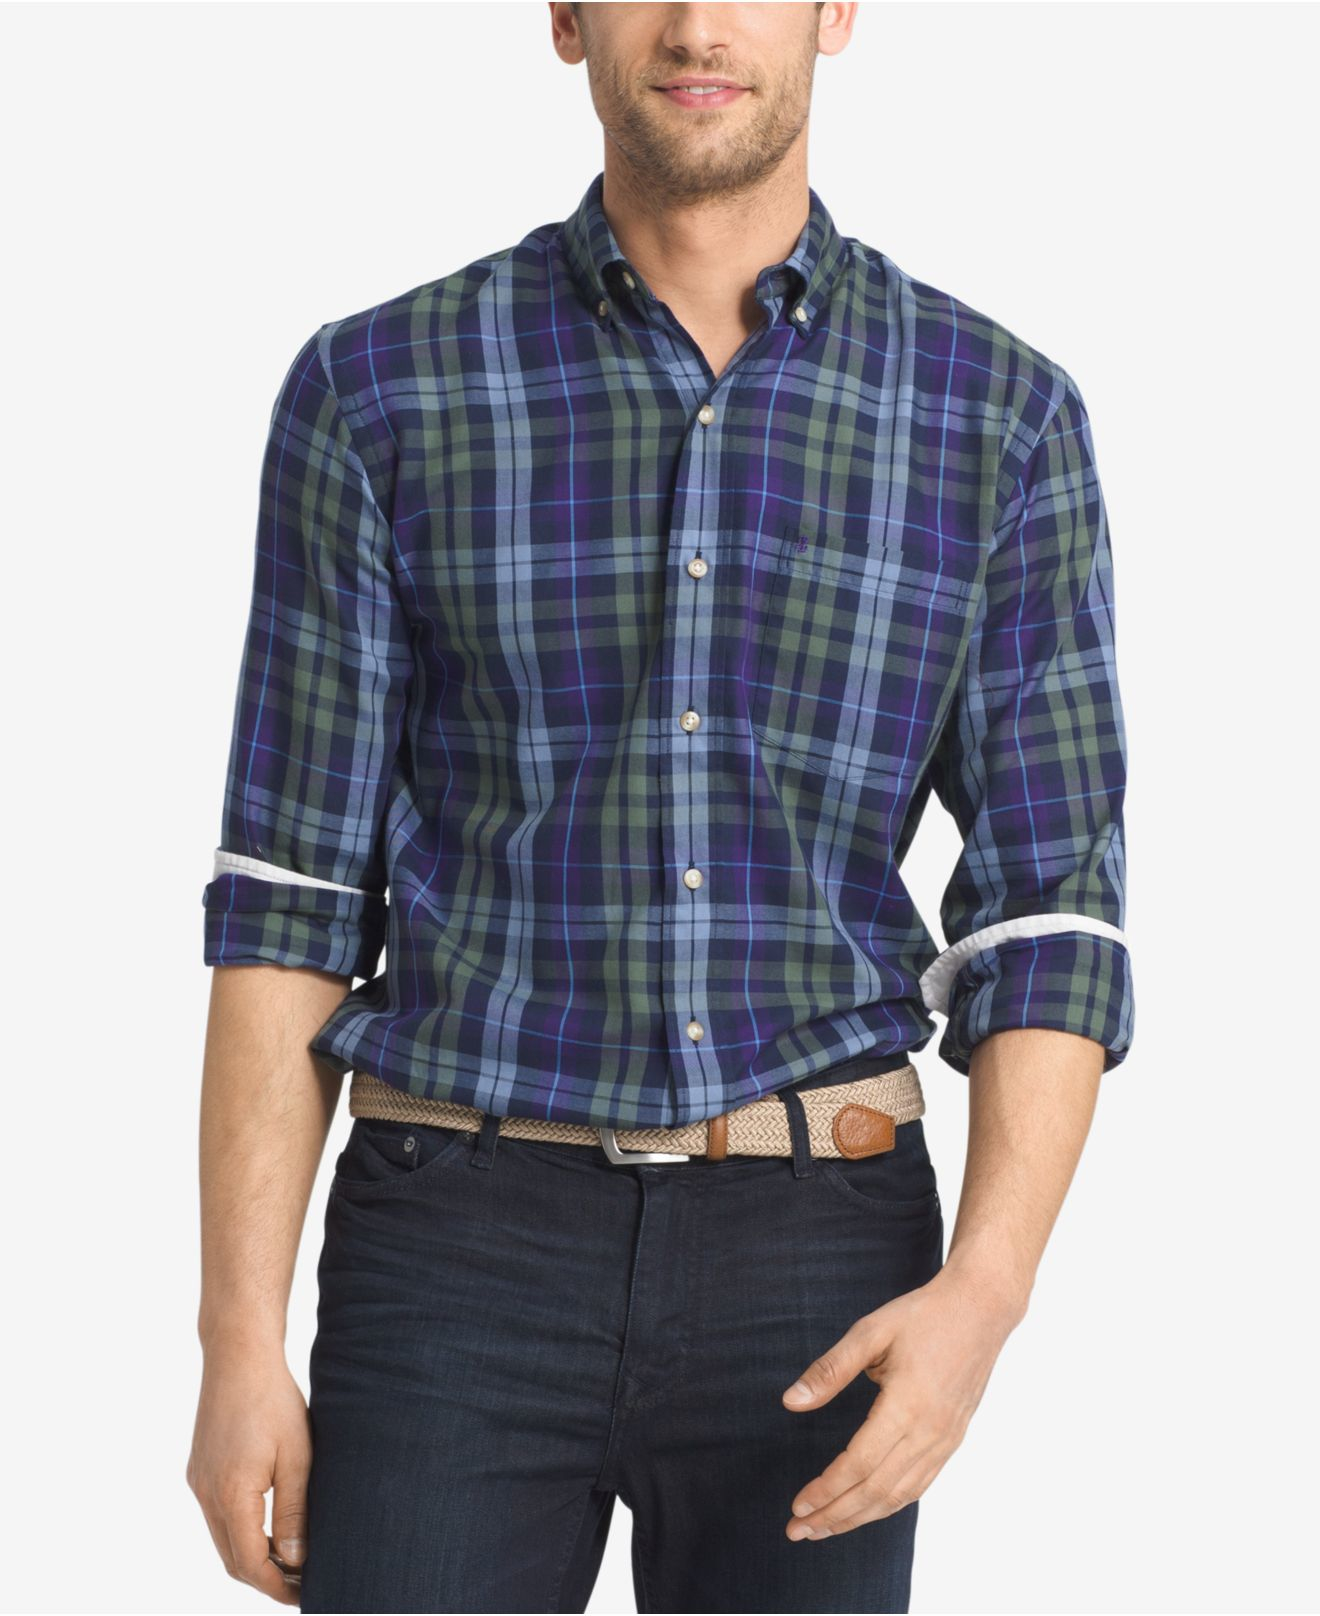 Izod men 39 s plaid button down long sleeve shirt in blue for for Izod button down shirts